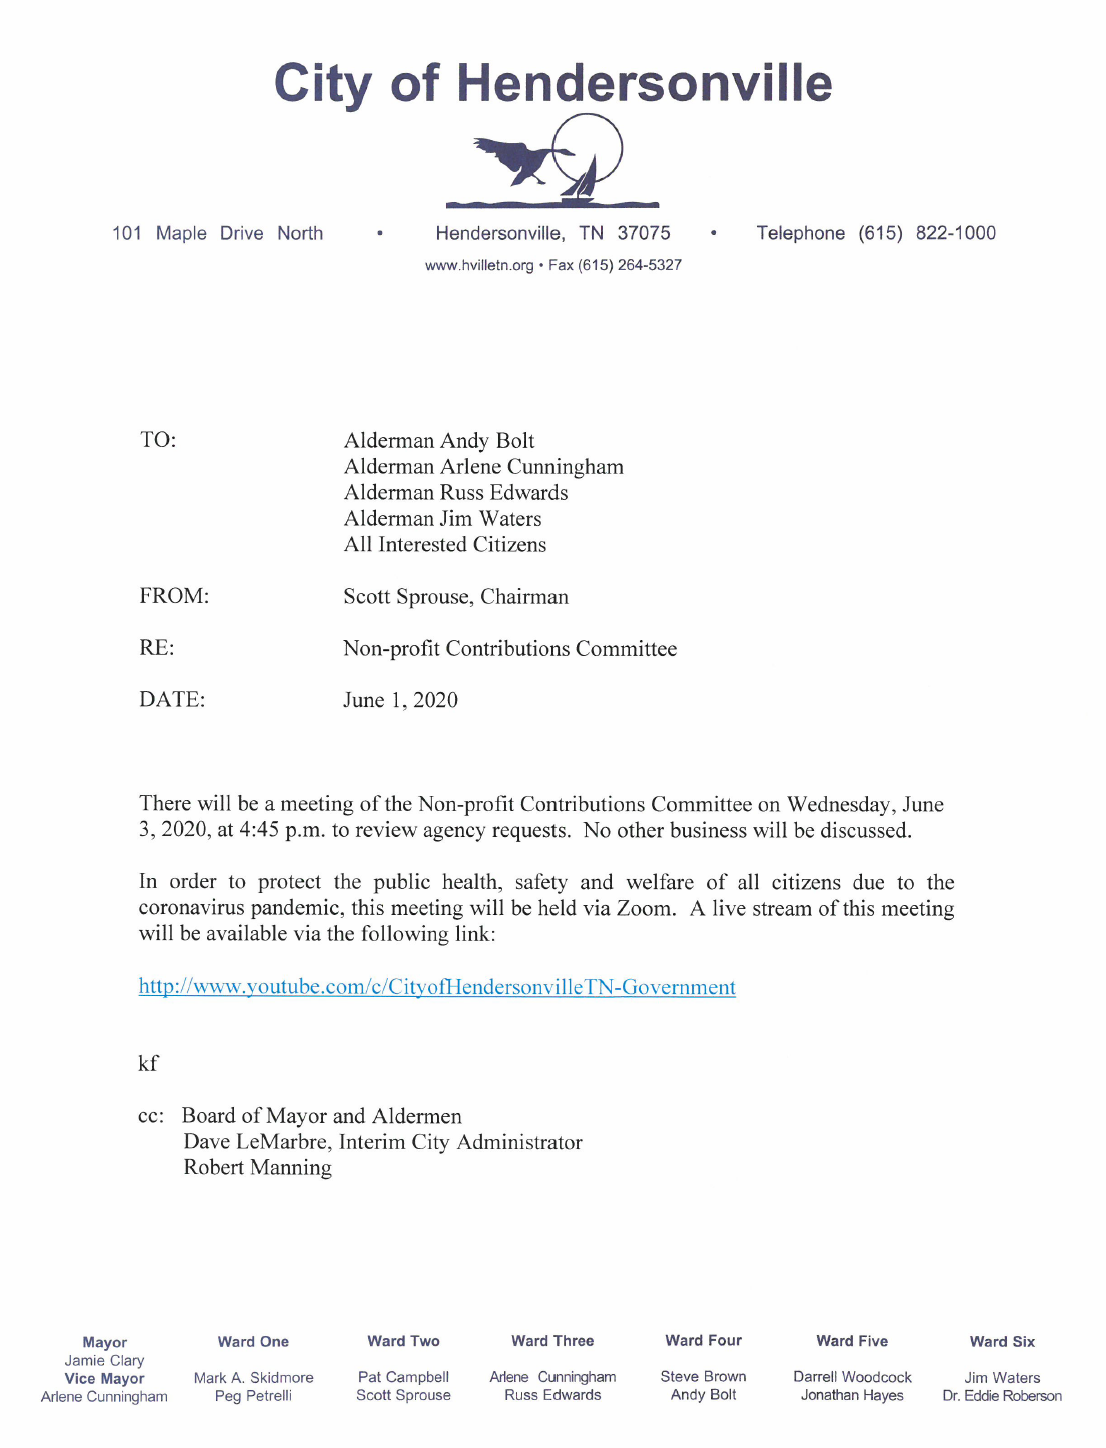 Non-profit_Contributions_Committee_Meeting_Notice